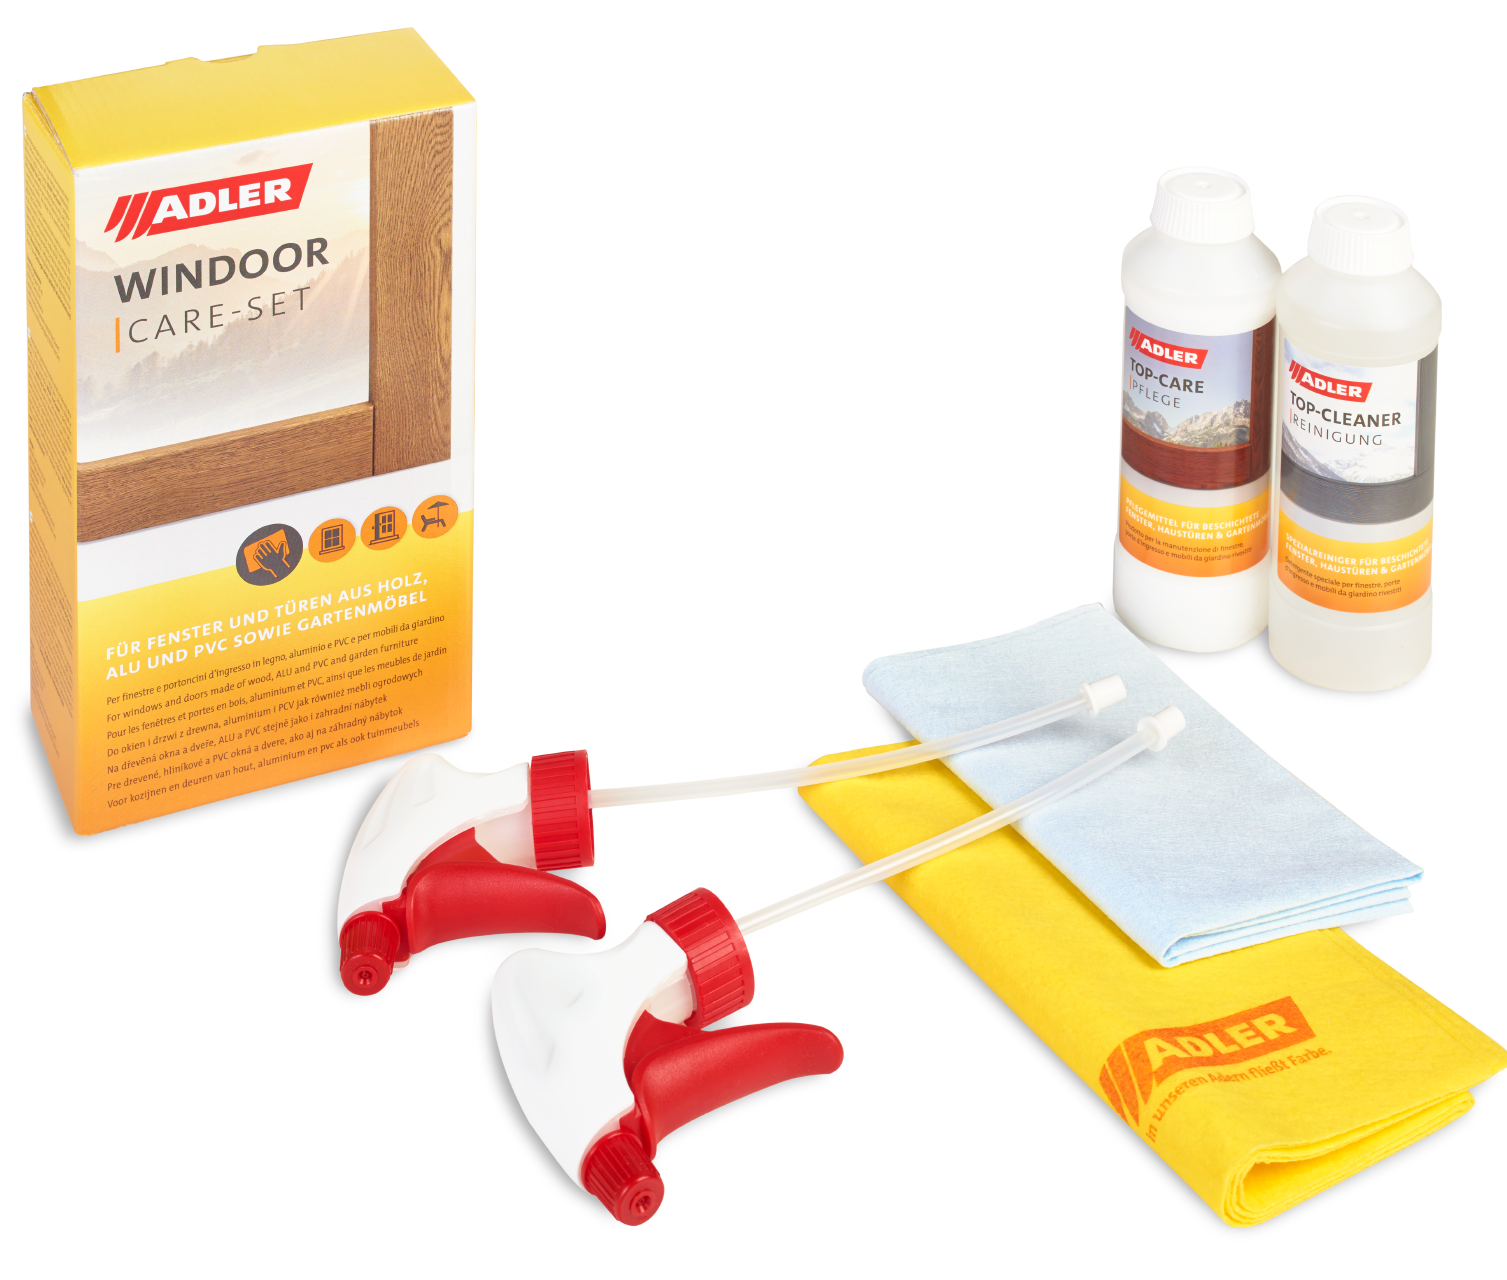 Adler Windoor | Care-Set